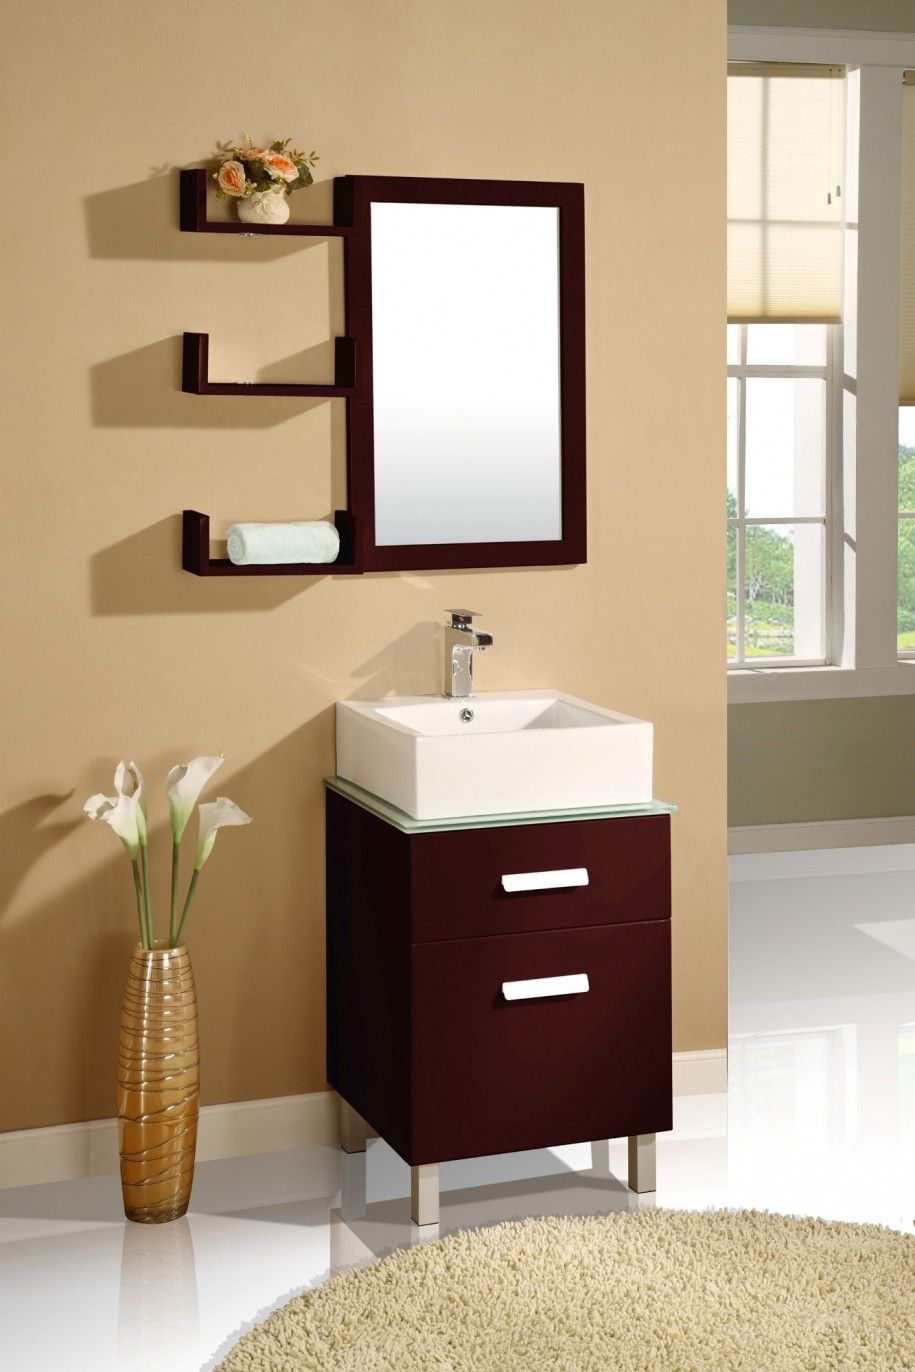 Simple Dark Wood Bathroom Mirrors With Shelves And Small Dark Wood Vanity Cabinet And White Wash